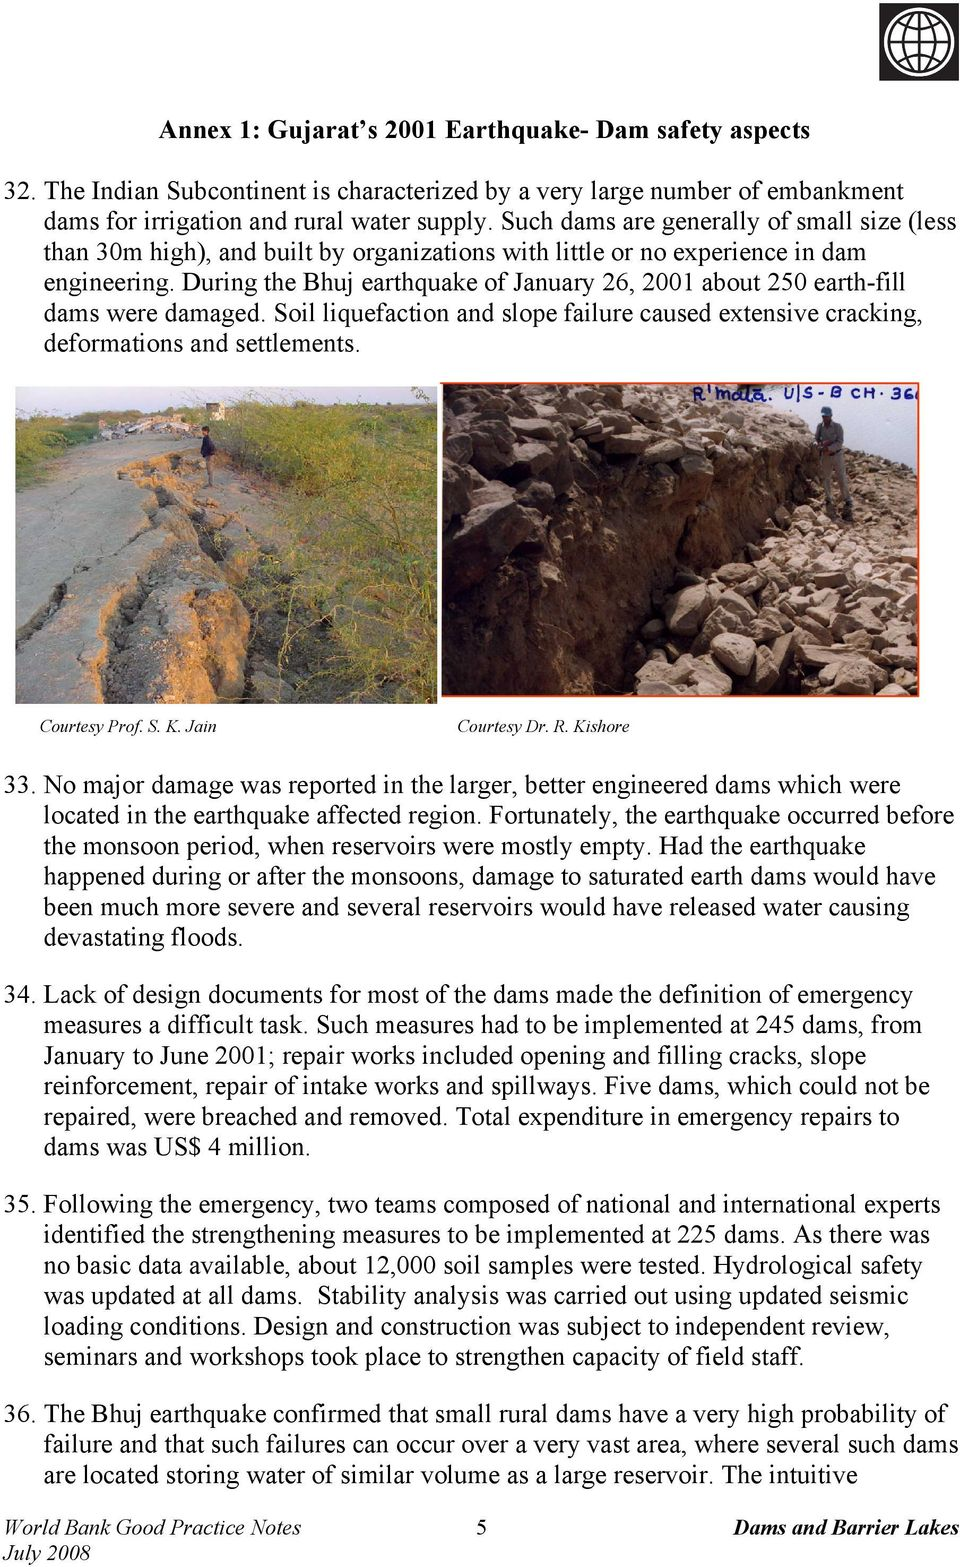 During the Bhuj earthquake of January 26, 2001 about 250 earth-fill dams were damaged. Soil liquefaction and slope failure caused extensive cracking, deformations and settlements. Courtesy Prof. S. K.